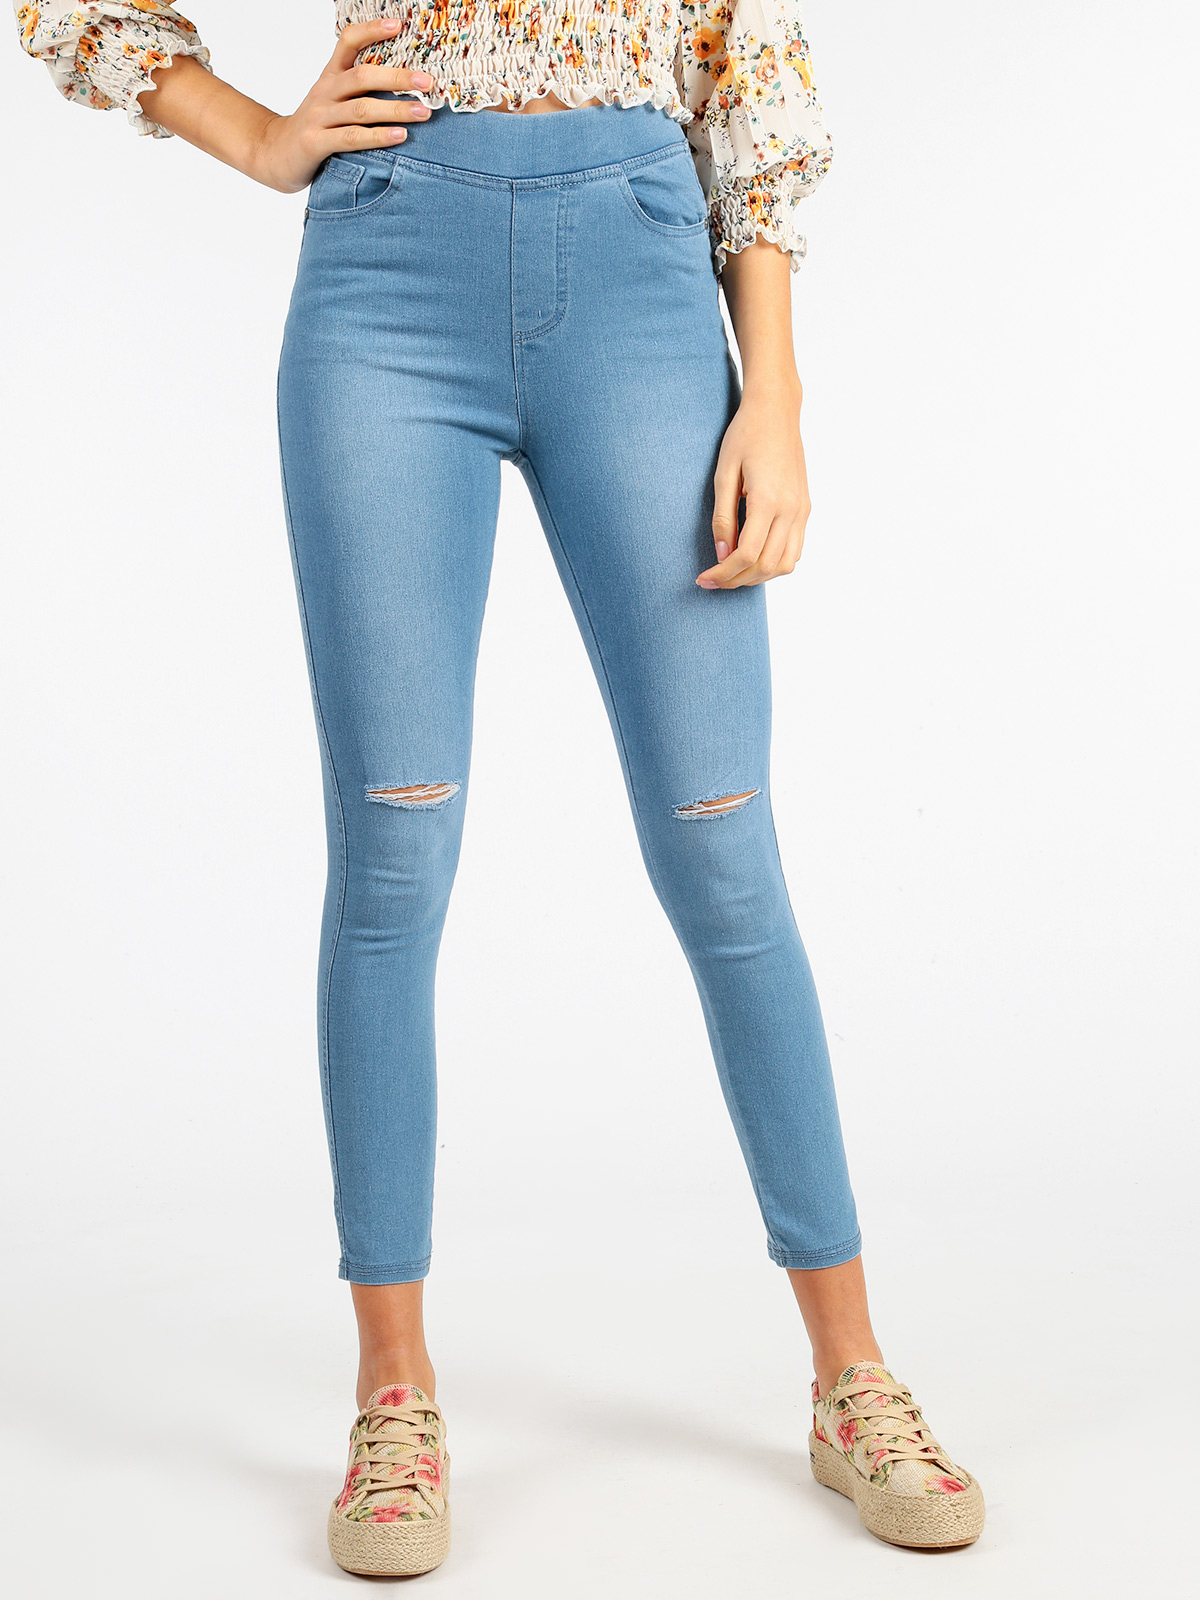 SOLADA Jeggings High Waist Torn Jeans